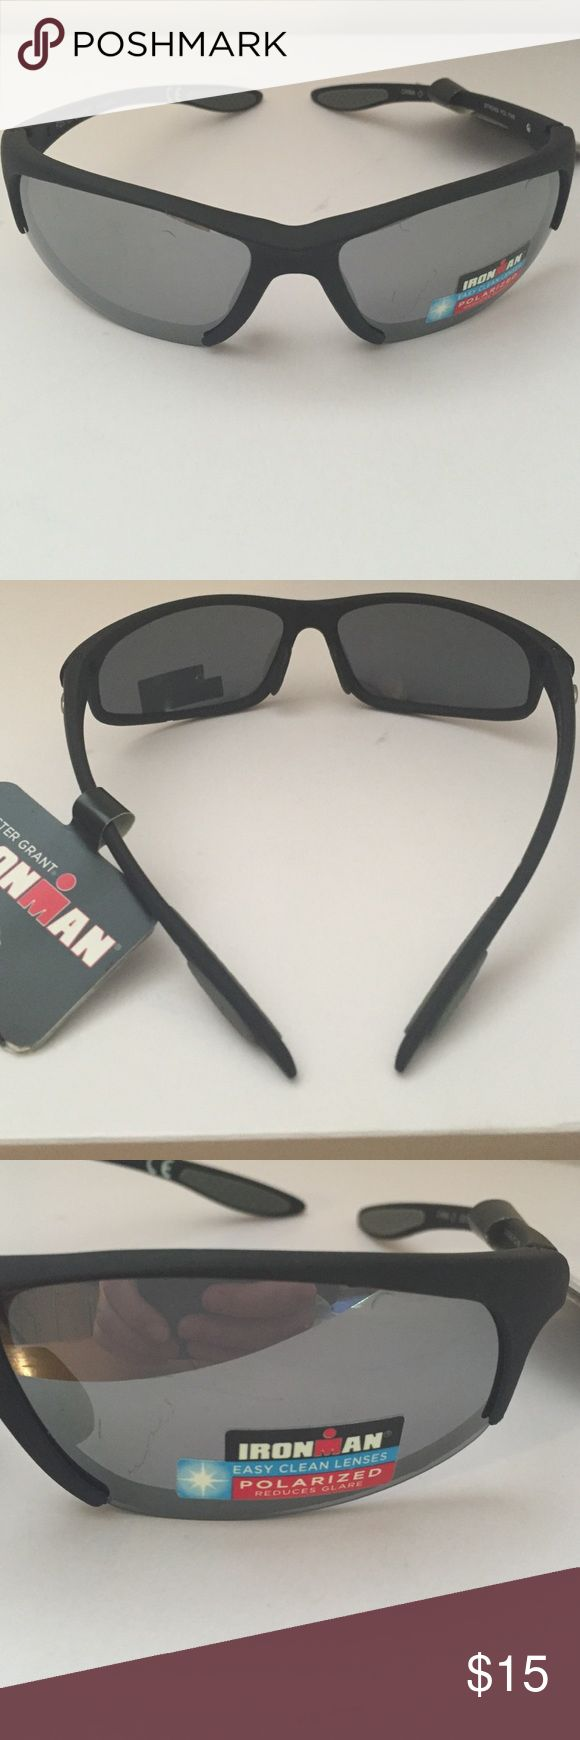 Foster Grant Ironman Sunglasses MSRP $25 Are you ready for summer? Don't forget about your eyes! Look stylish and get great protection for your eyes at the same time. MaxBlock 100% UVA/UVB protection and polarized lenses. Foster Grant Accessories Sunglasses